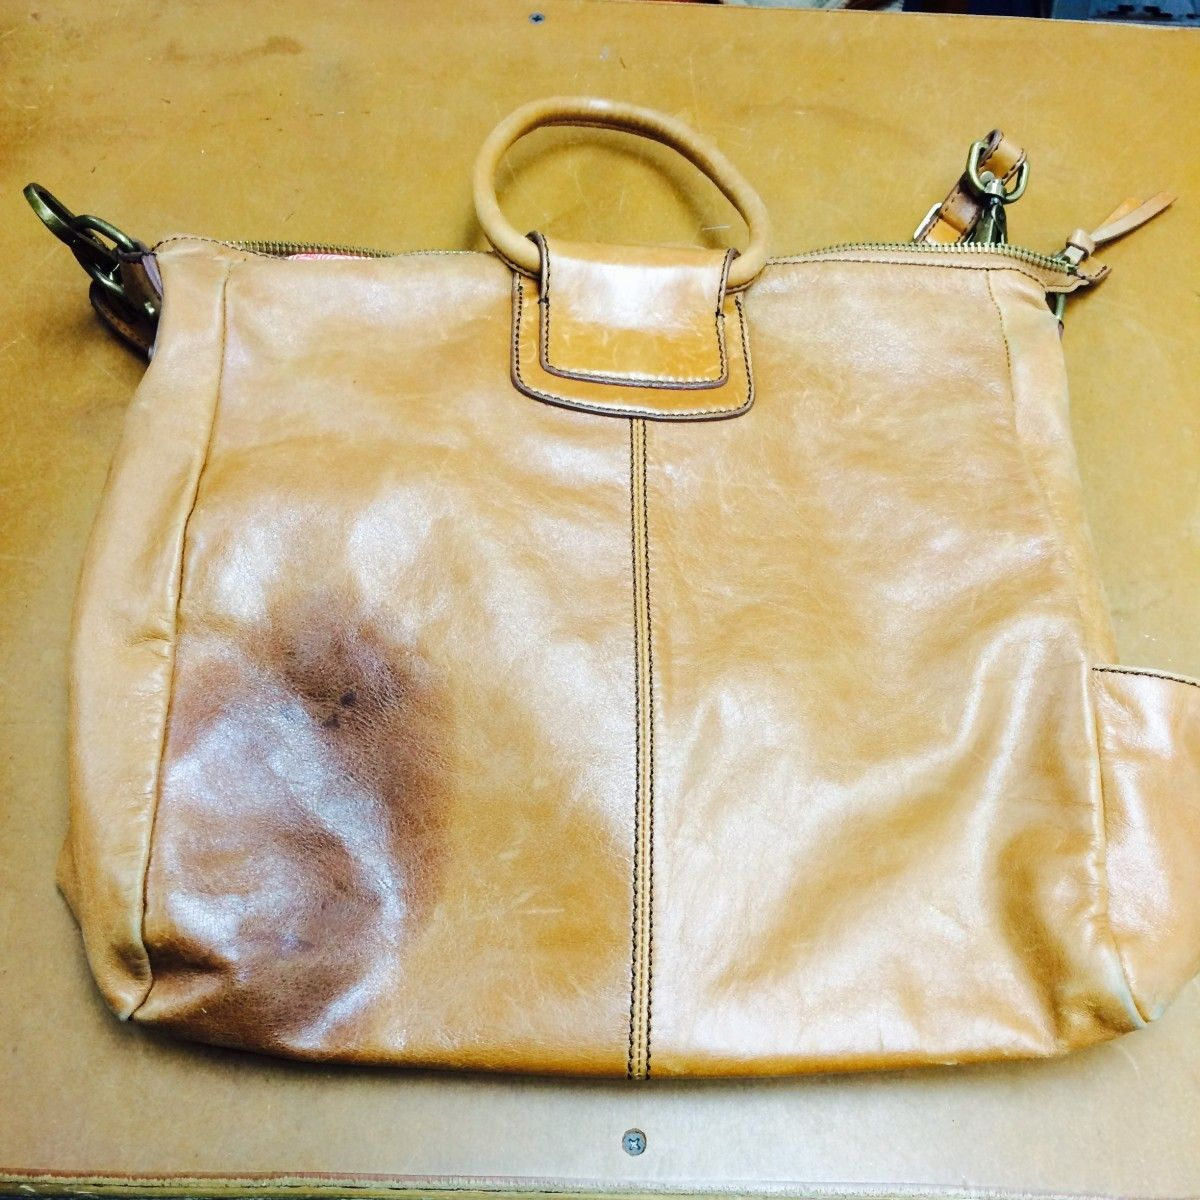 Purse Cleaning & Repair Purse cleaning, Clean leather